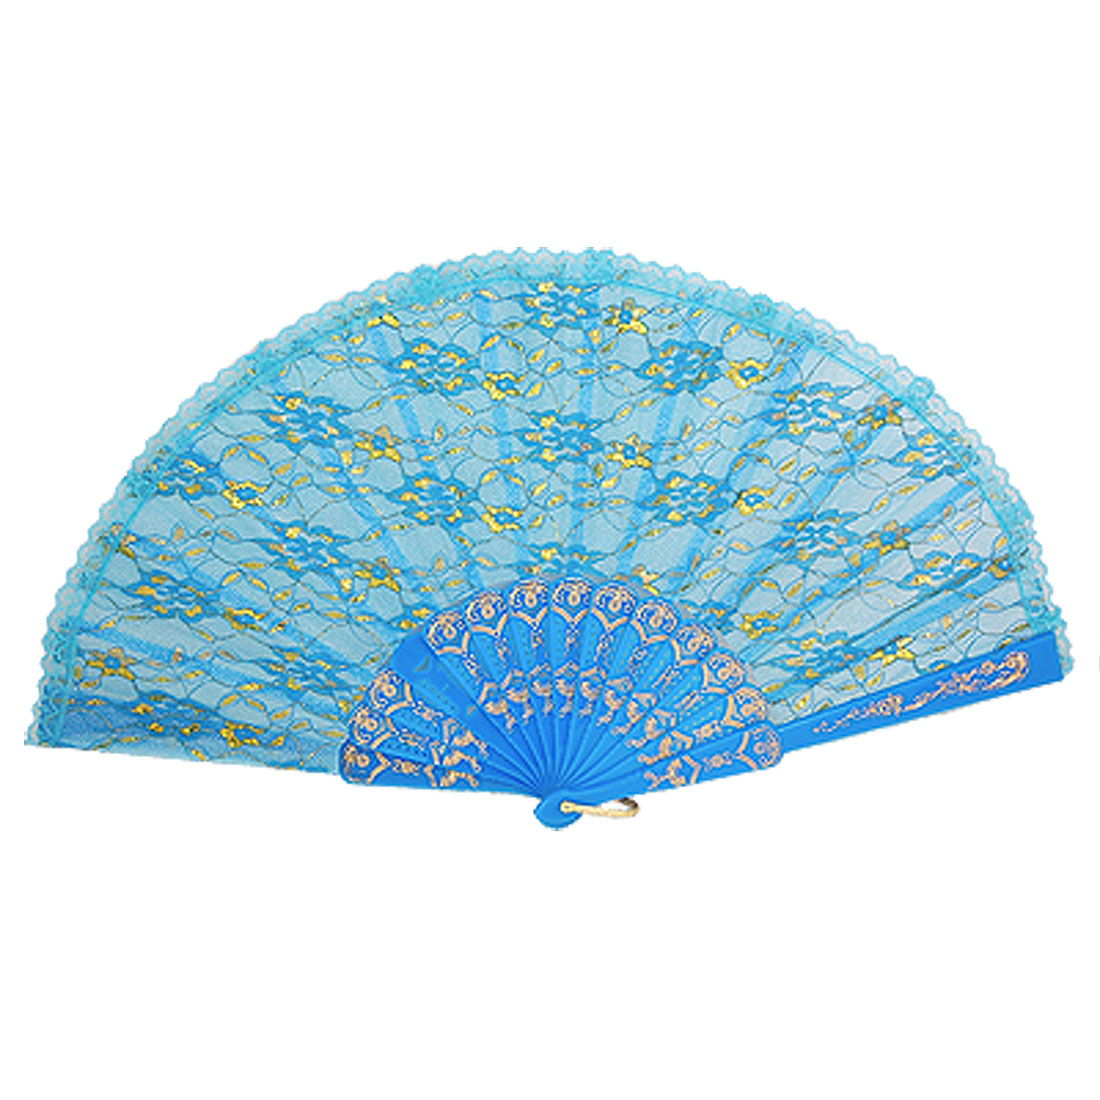 Floral Printed Plastic Frame Metallic Thread Dancing Fan Gold Tone Blue